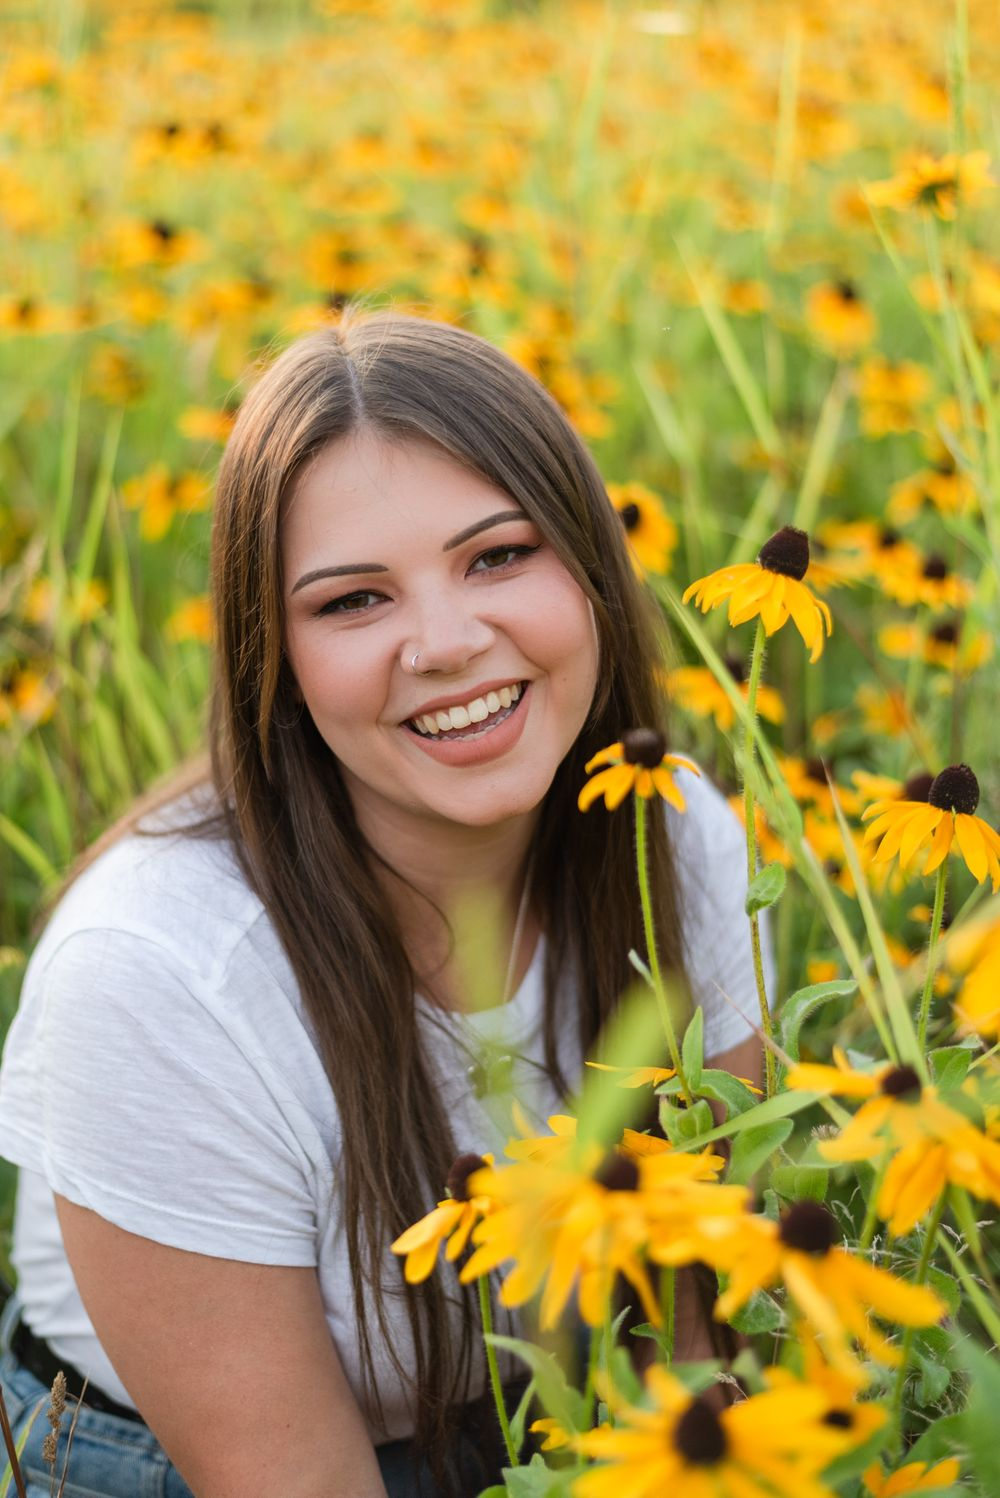 High school senior smiling in flower patch in golden sunlight at Hartwood Acres in Pittsburgh Pennsylvania